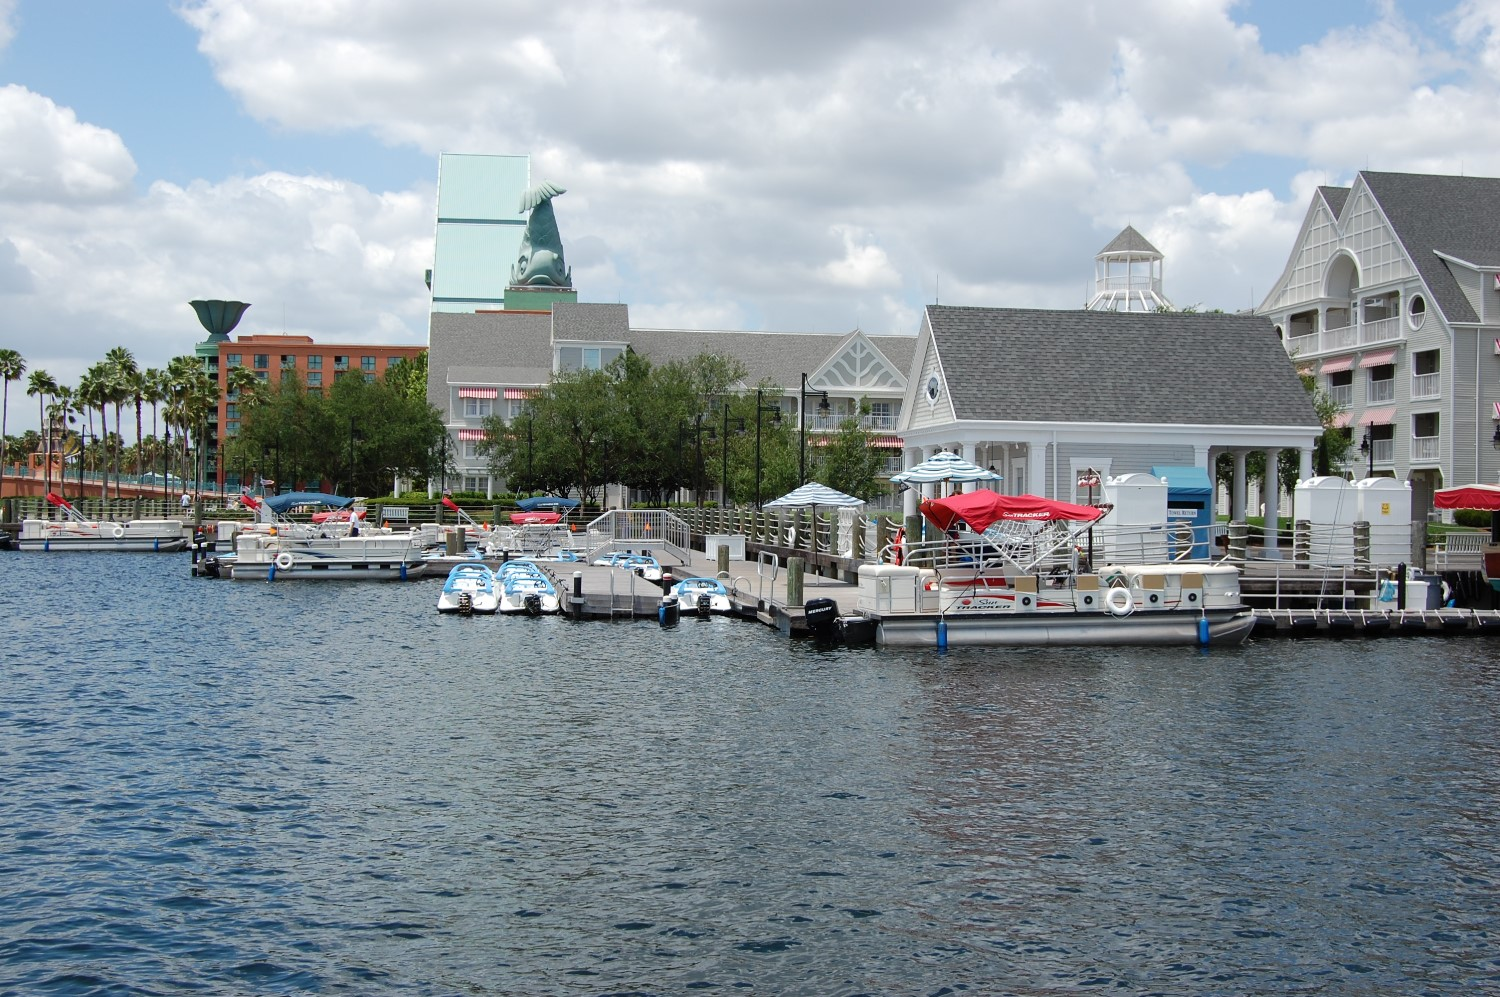 Marina at Disney's Yacht Club Resort in the Epcot area of Disney World.   Photo by www.buildabettermousetrip.com